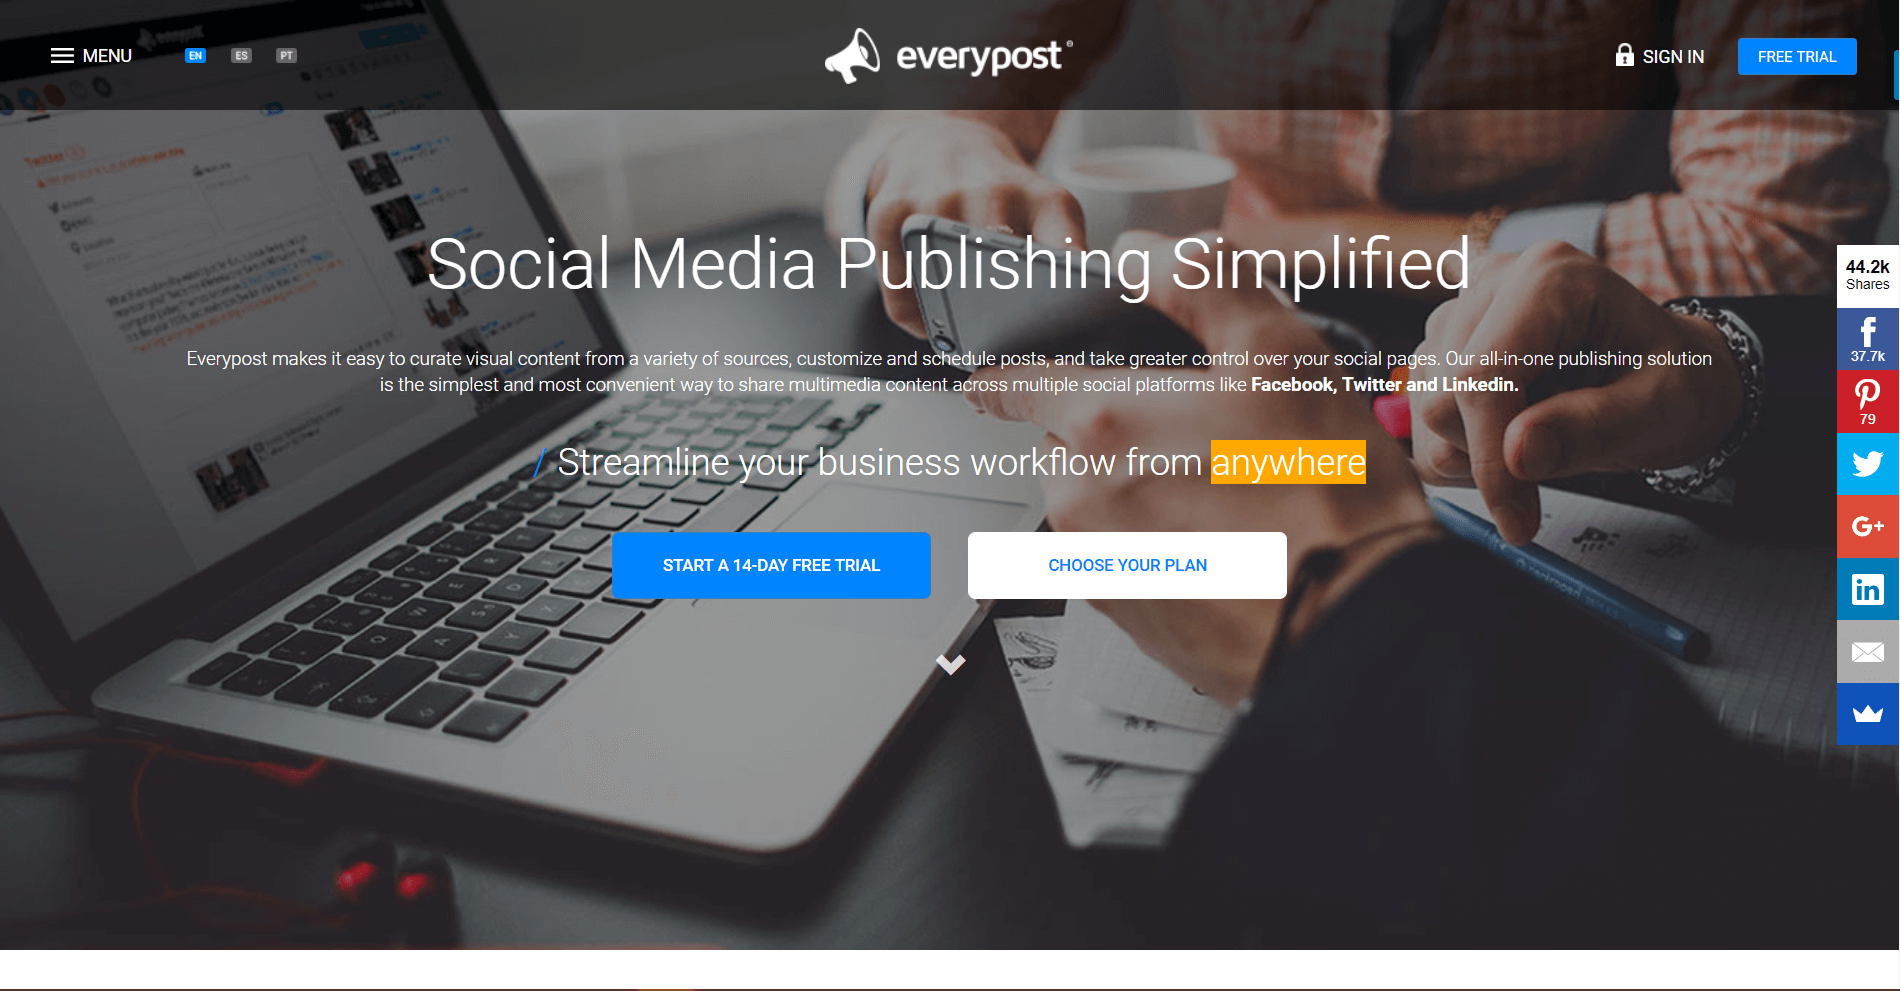 Everypost Social Media Marketing Tool